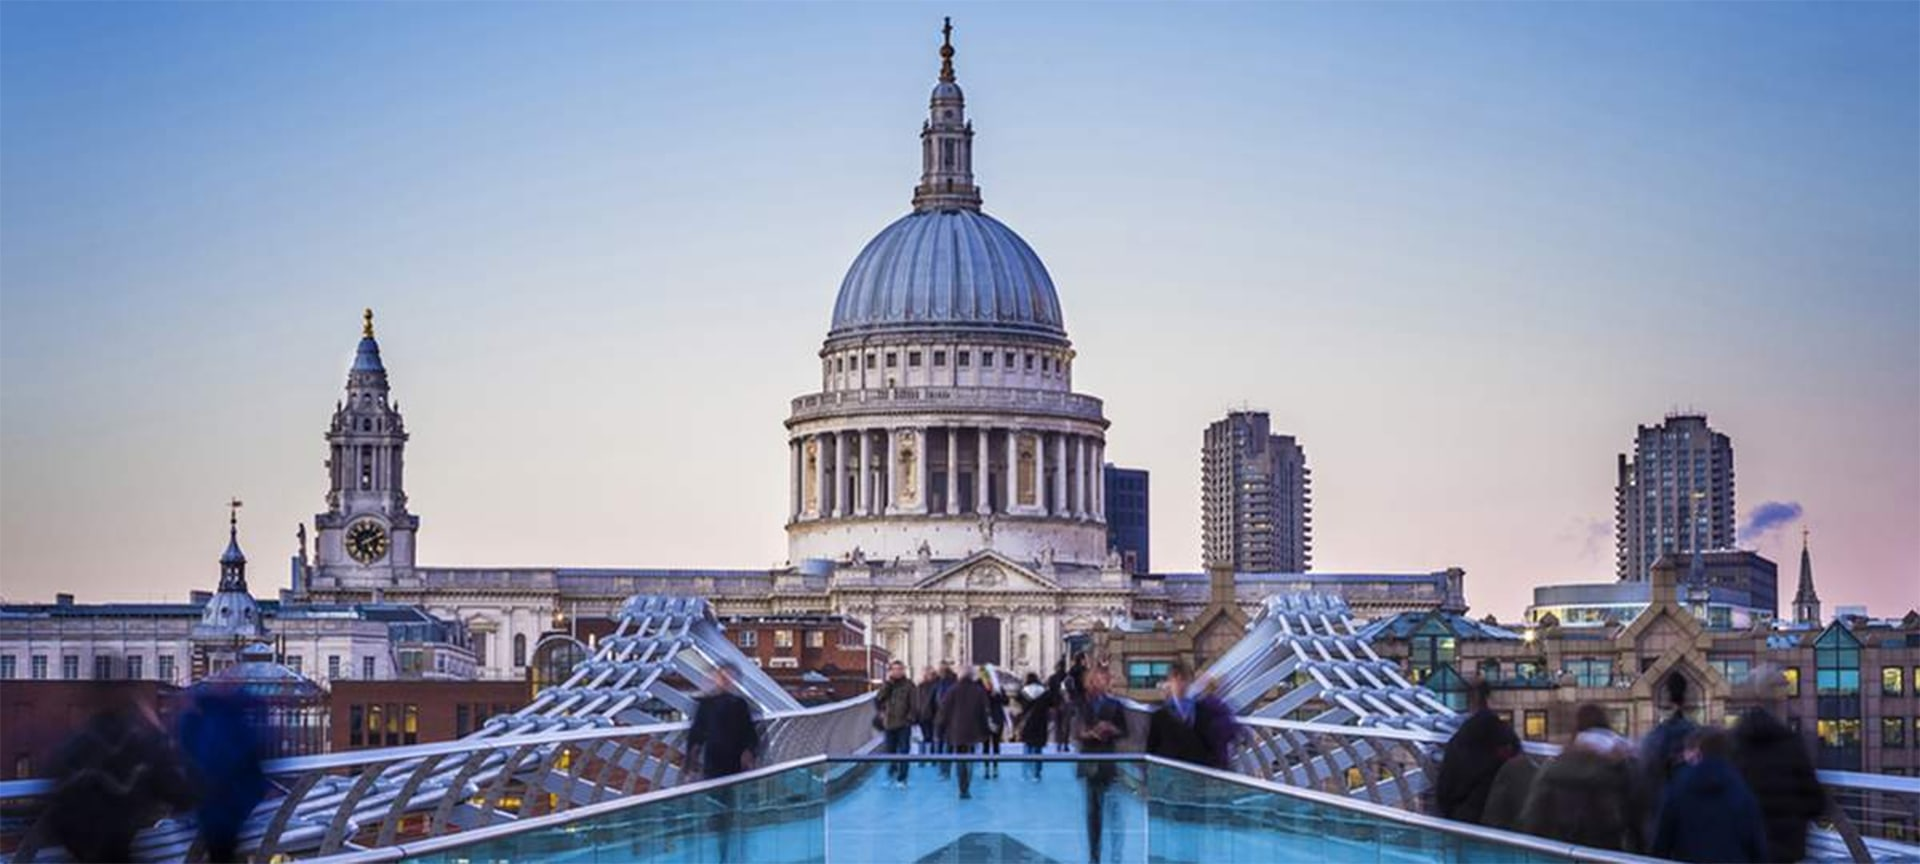 For more than 1,400 years, a Cathedral dedicated to St Paul has stood at the highest point in the City. The present Cathedral is the masterpiece of Britain's most famous architect Sir Christopher Wren.